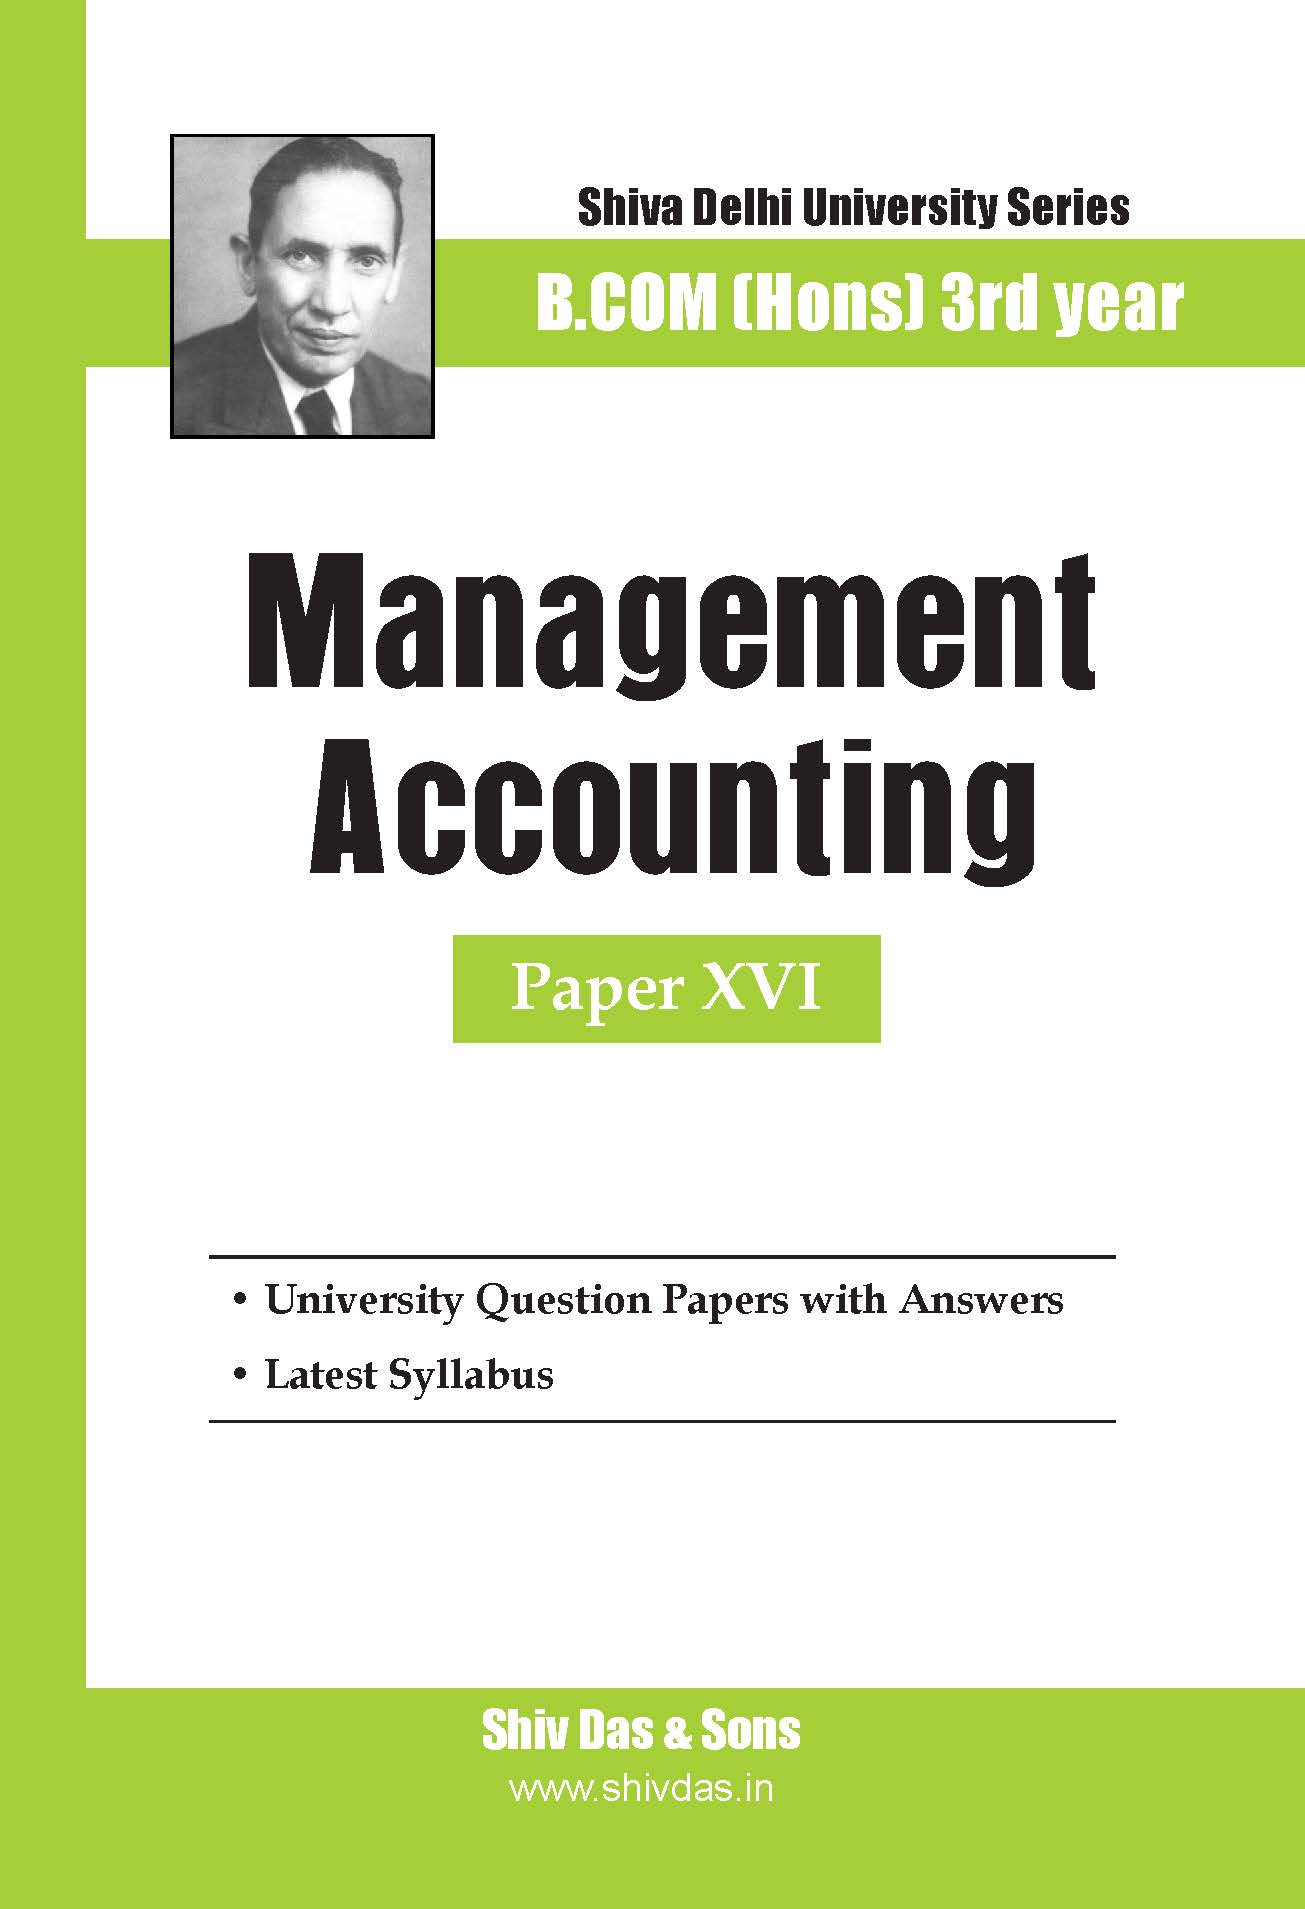 B.Com Hons-SOL/External-3rd Year-Management Accounting-Shiv Das-Delhi University Series